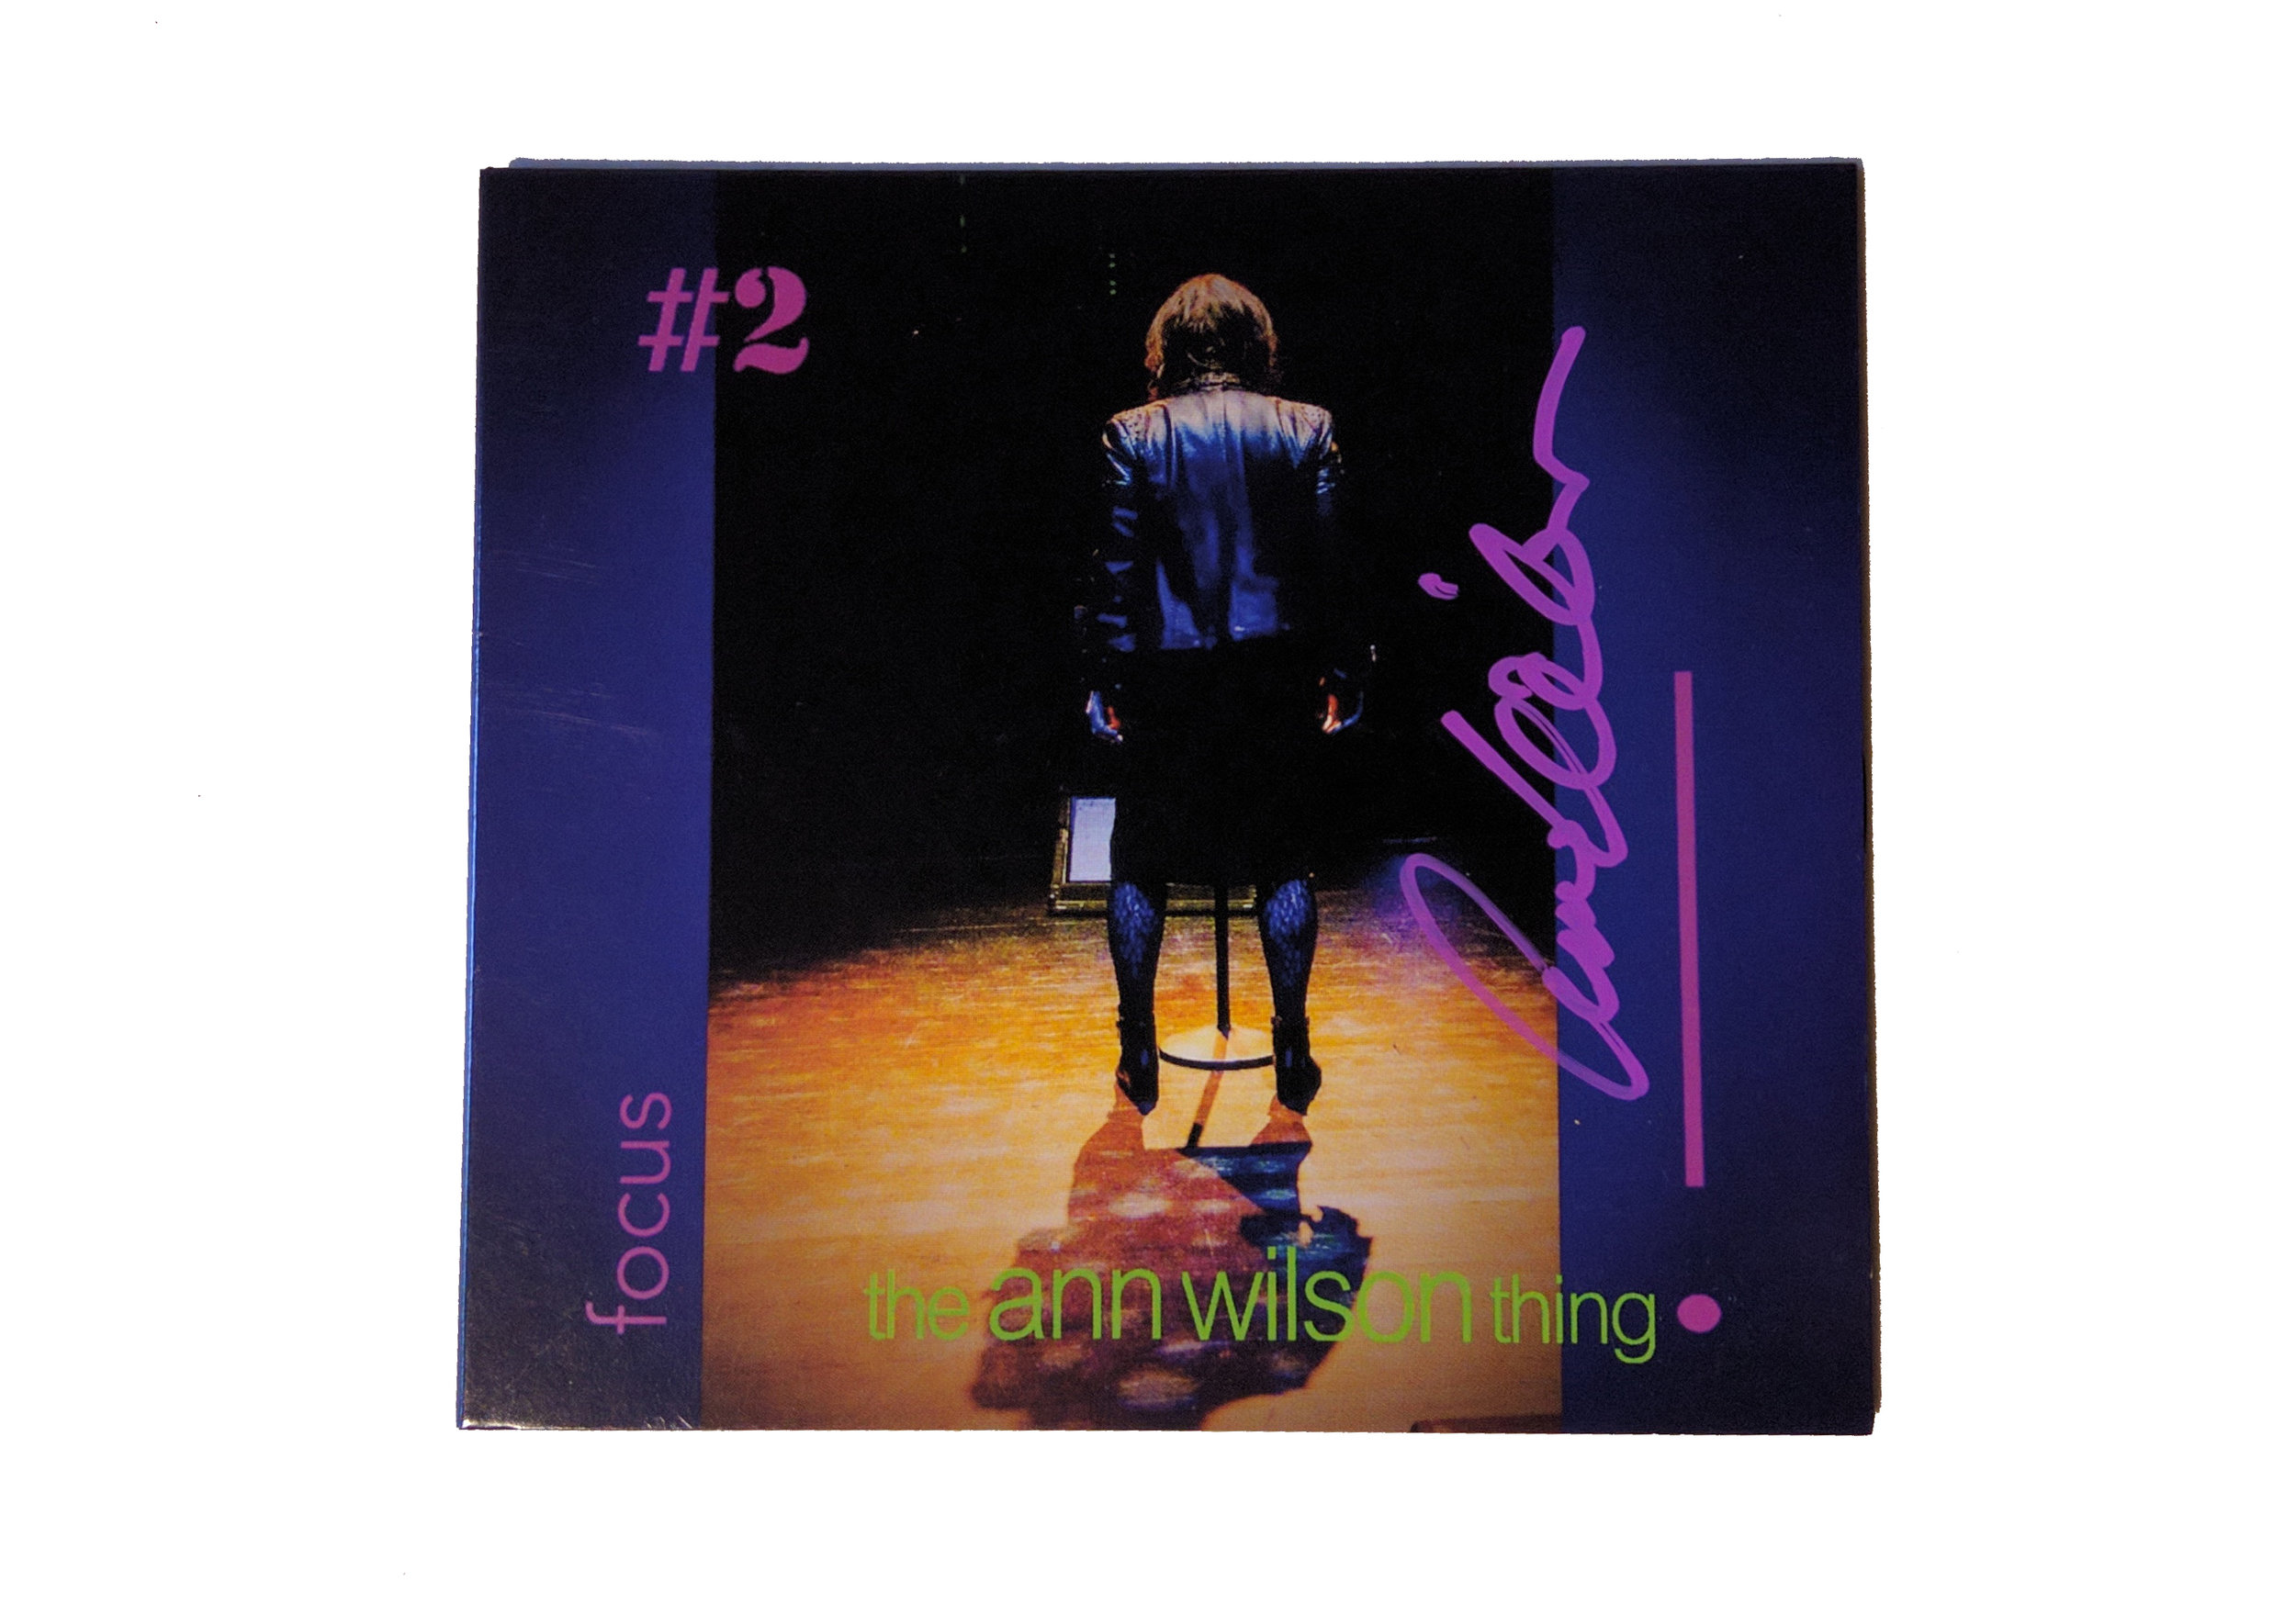 New signed copy of tawt - ep#2 focus